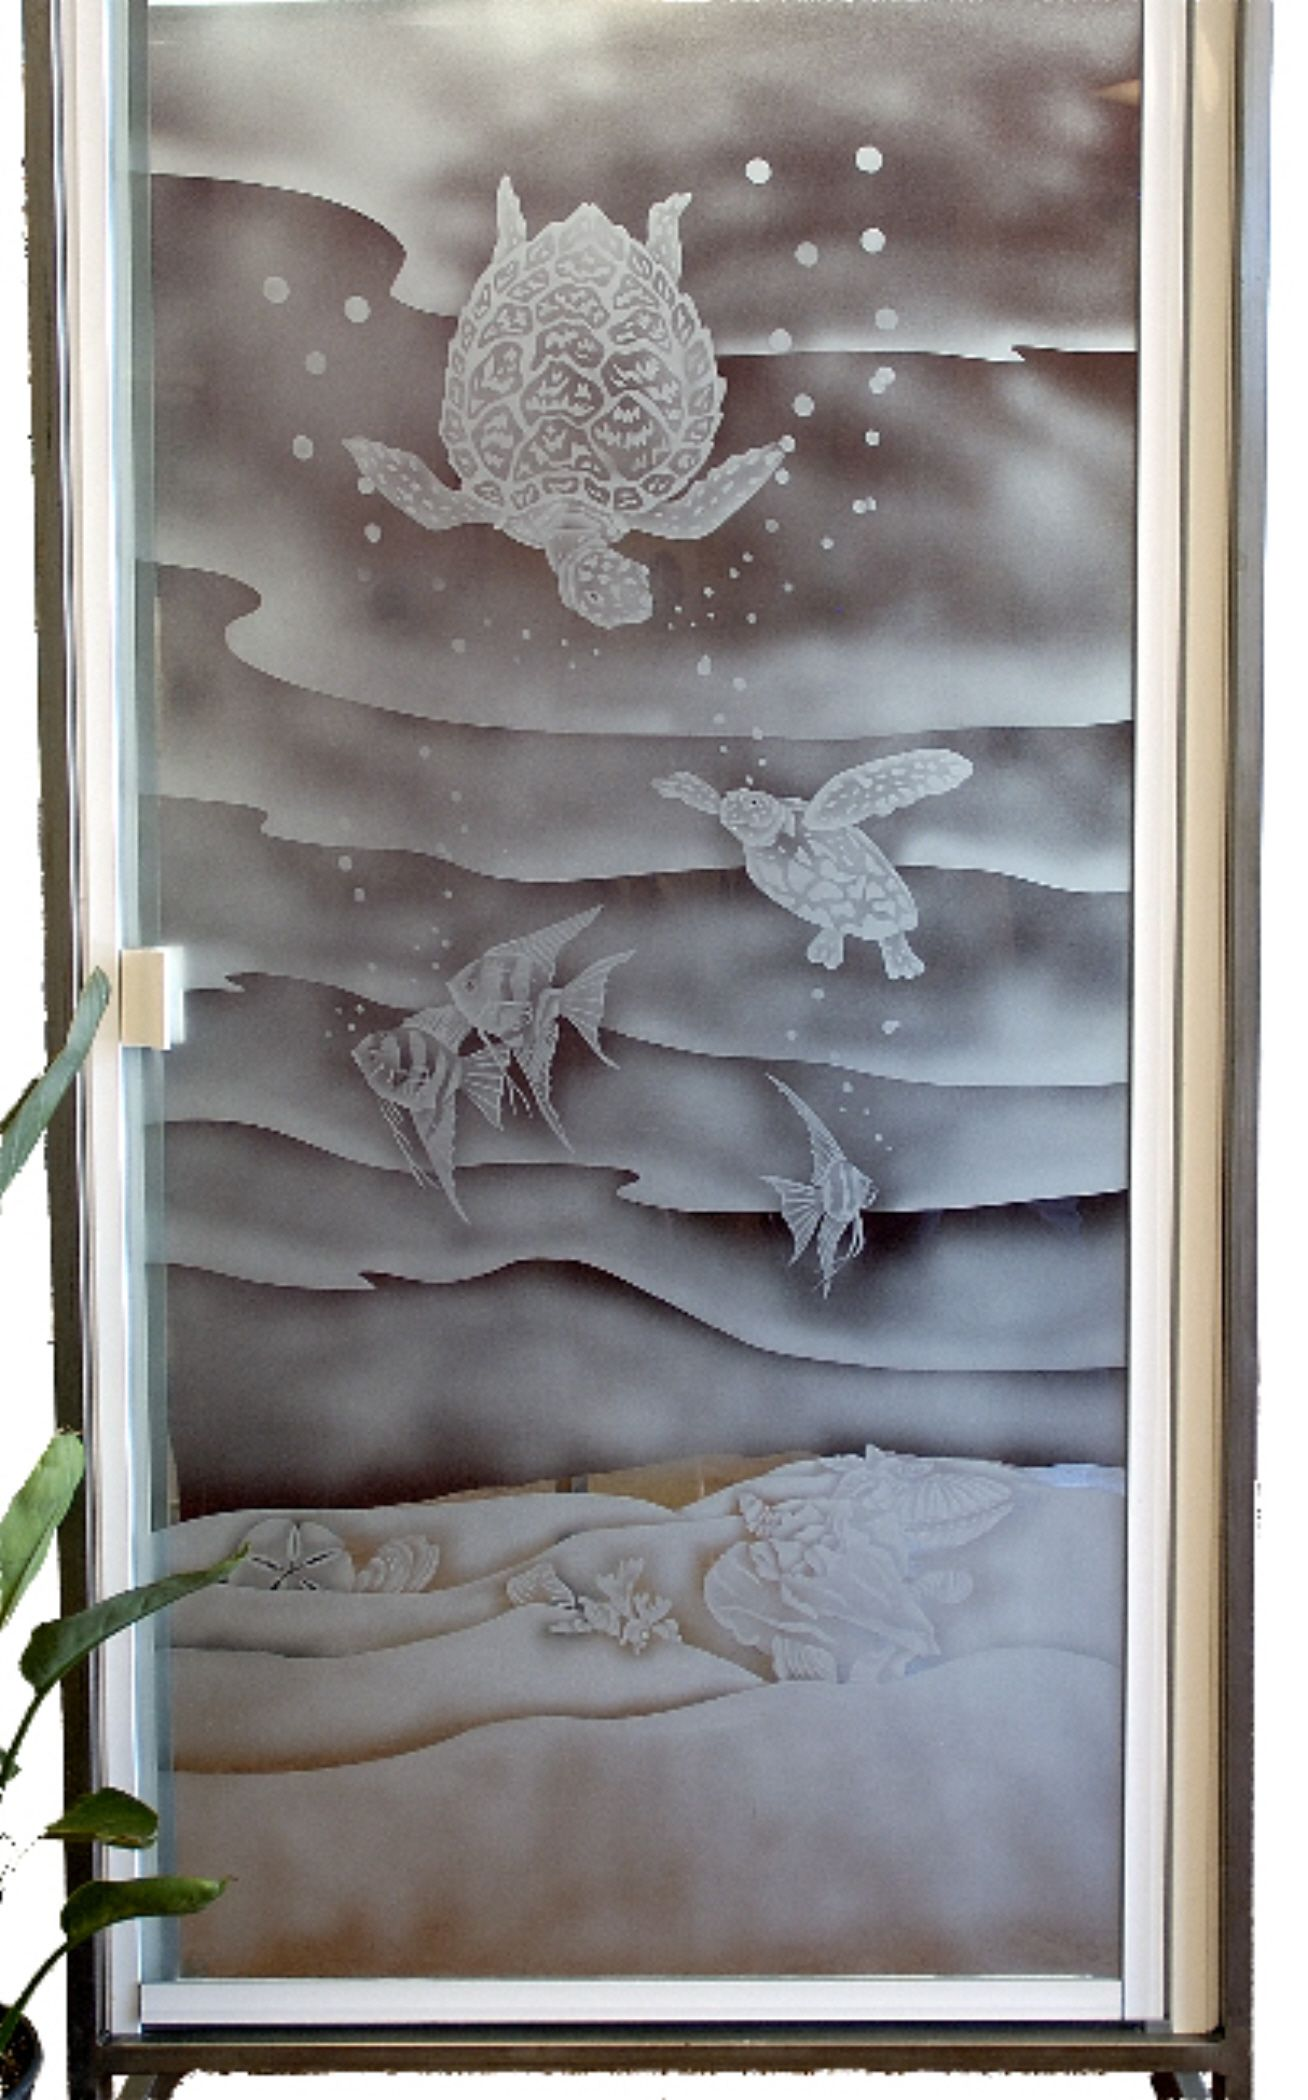 Everyone Loves Sea Turtles This Shower Door Is Shade Etched With An Underwater Sea Turtle Design On Etched Glass Shower Doors Shower Doors Glass Shower Panels